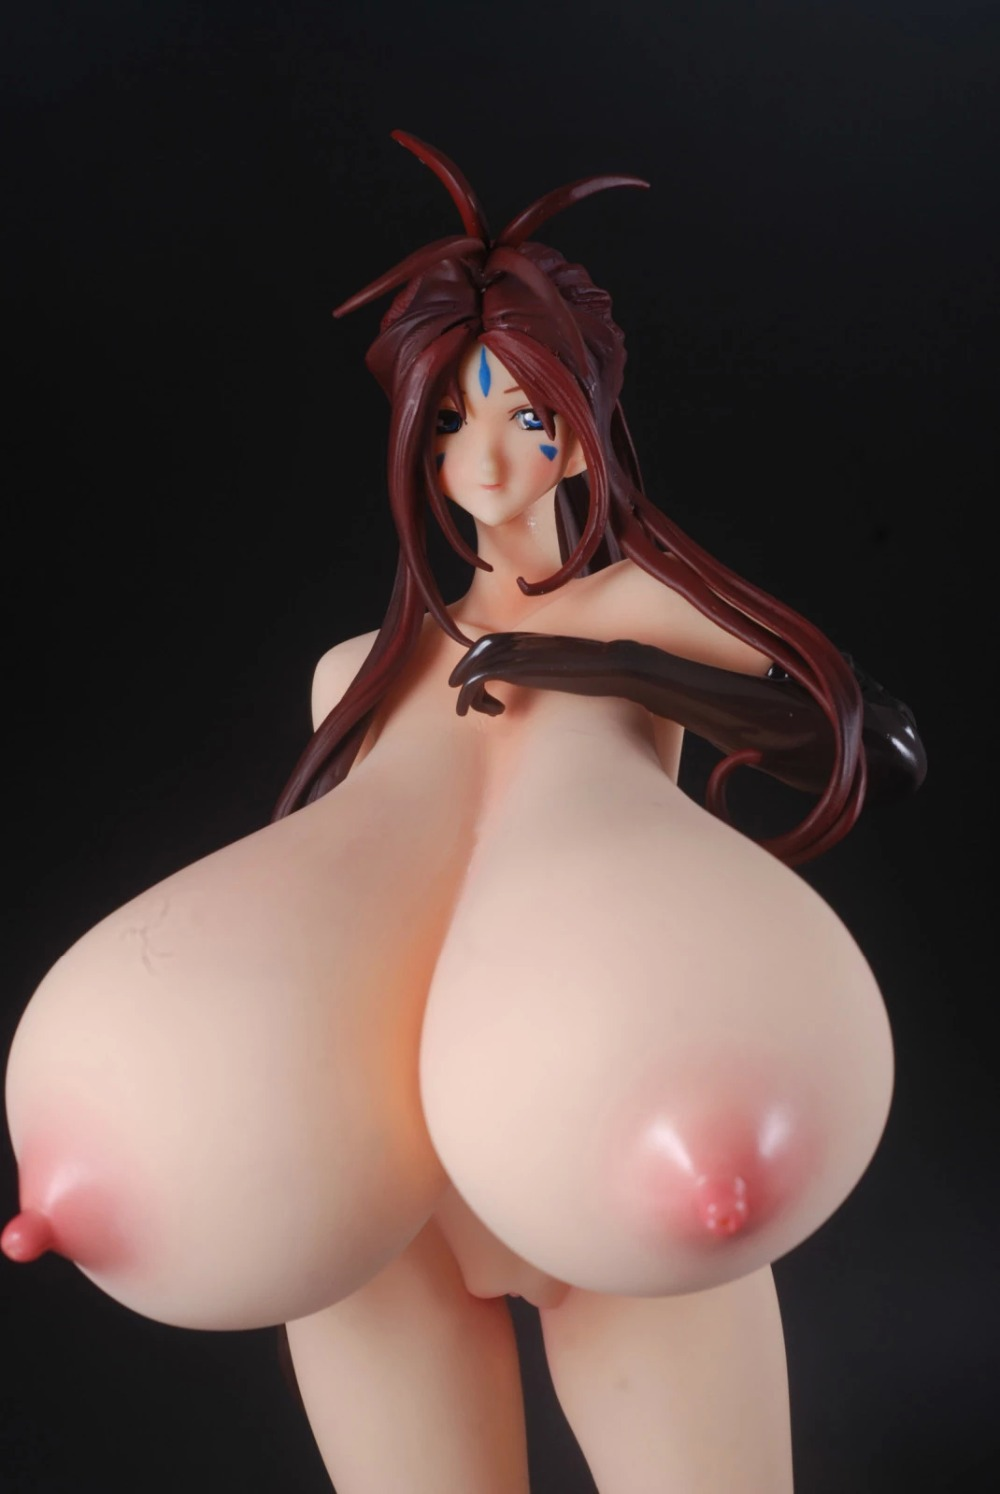 Sexy Anime Girl Huge Tits